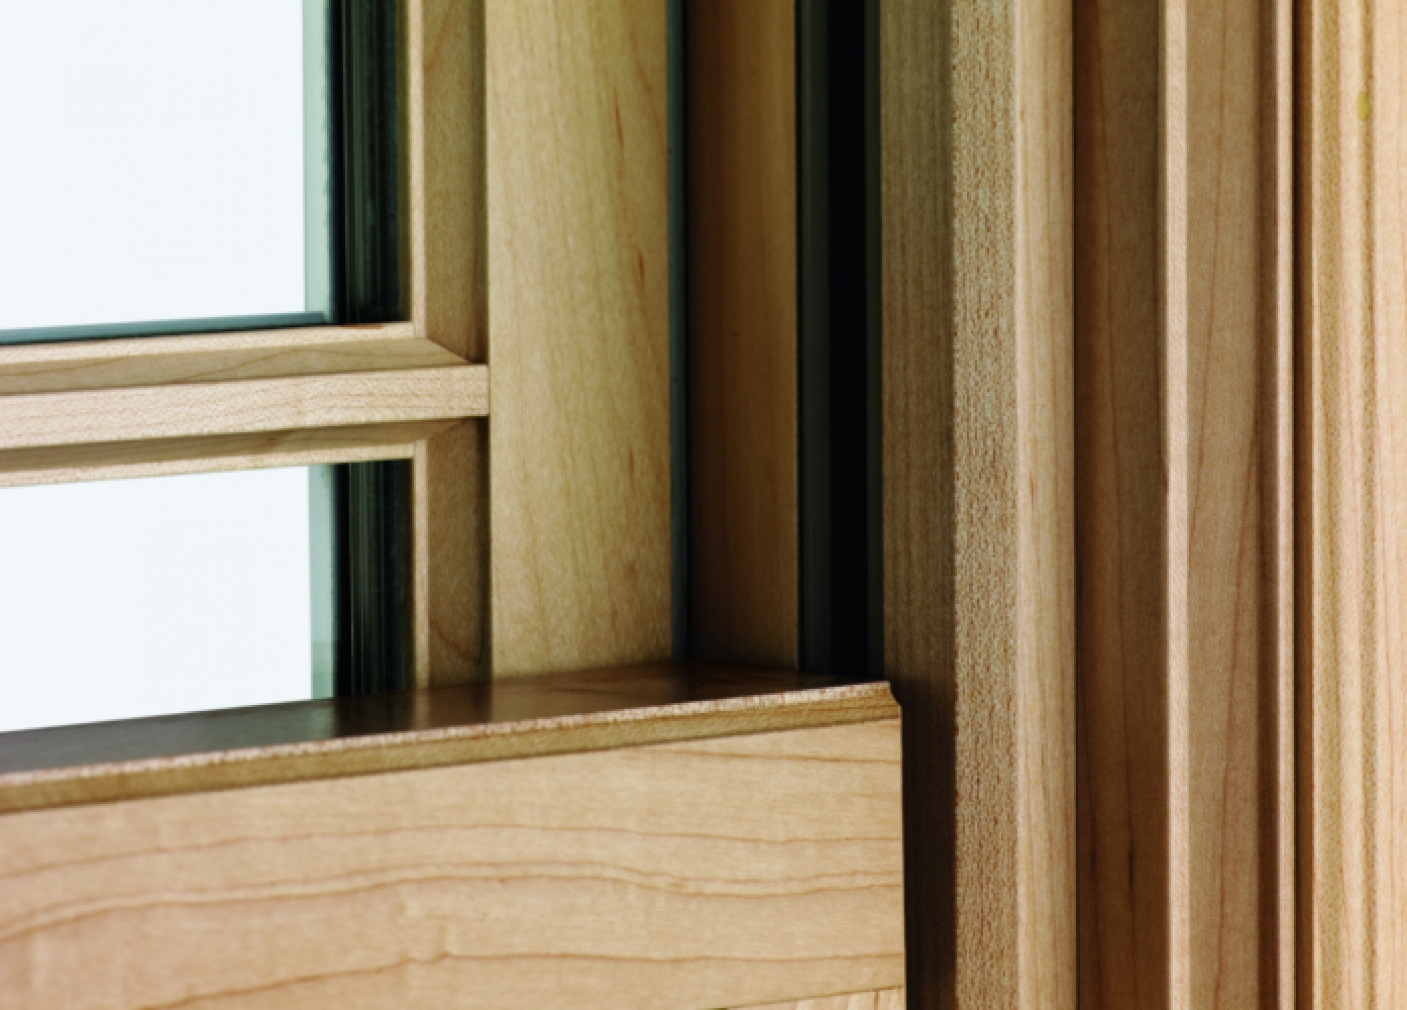 400 Series Woodwright Double-Hung Insert Window Maple Wood Interior